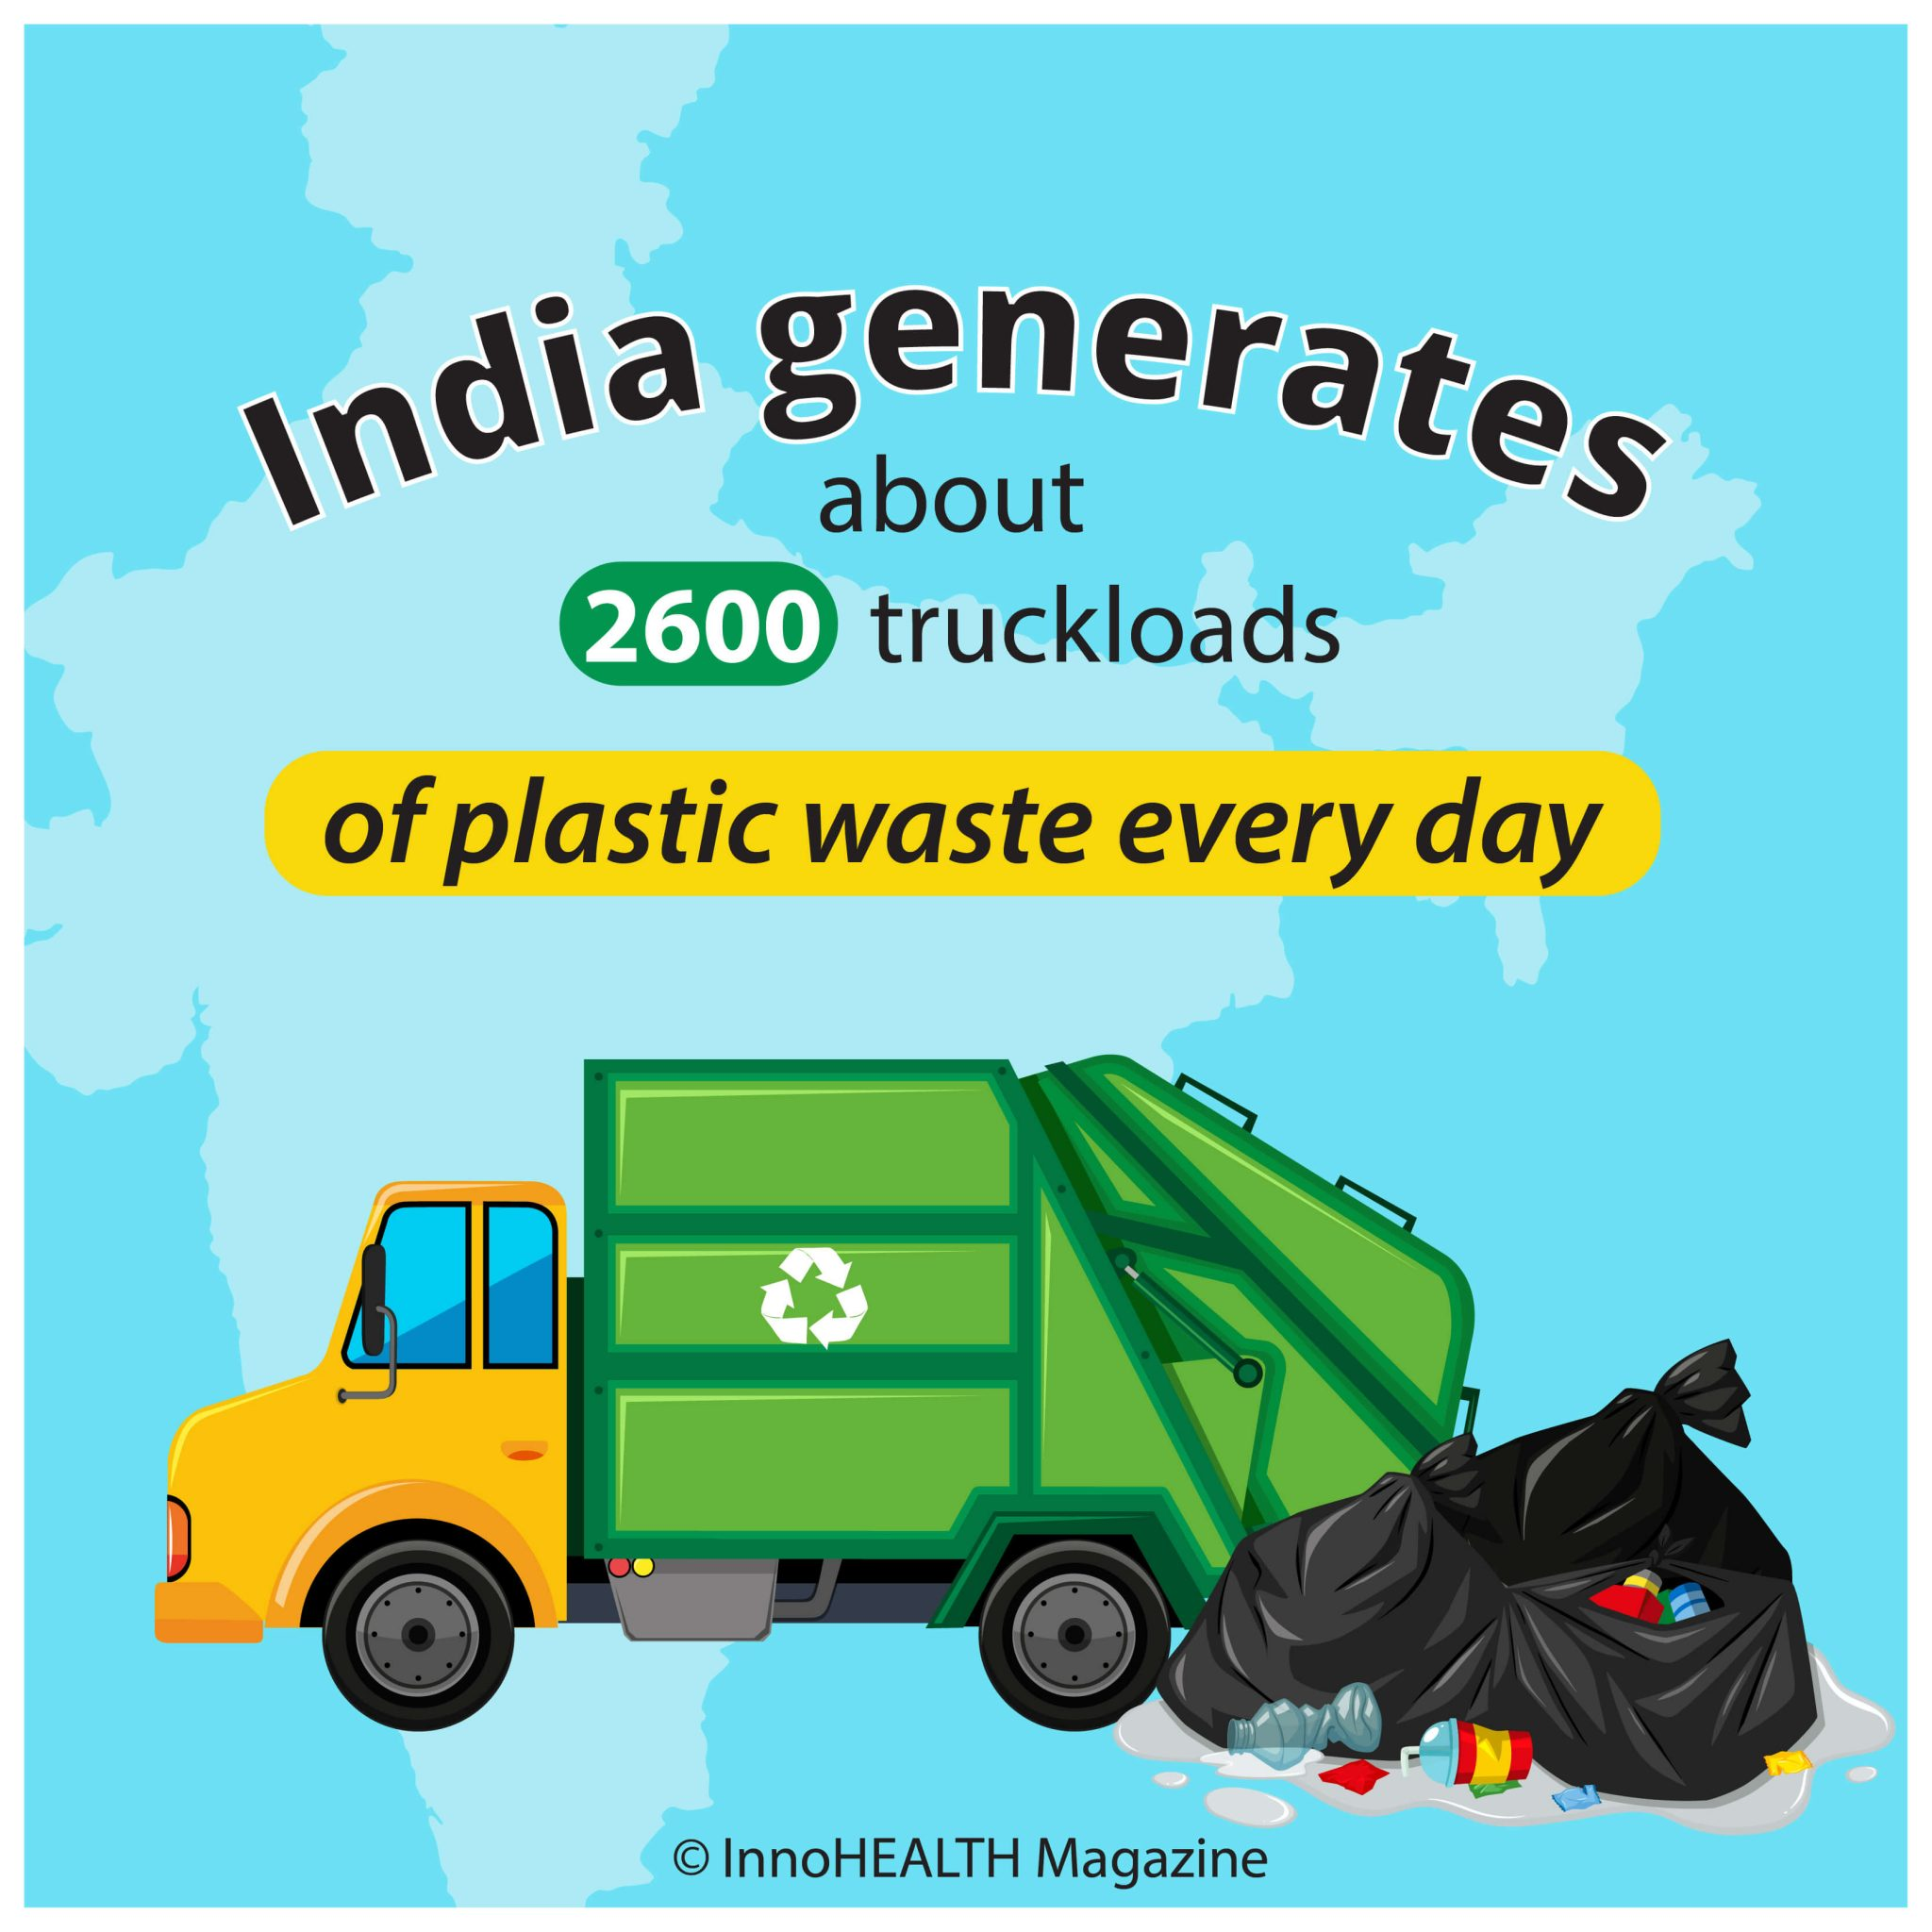 India generates 2600 truckloads of waste every year